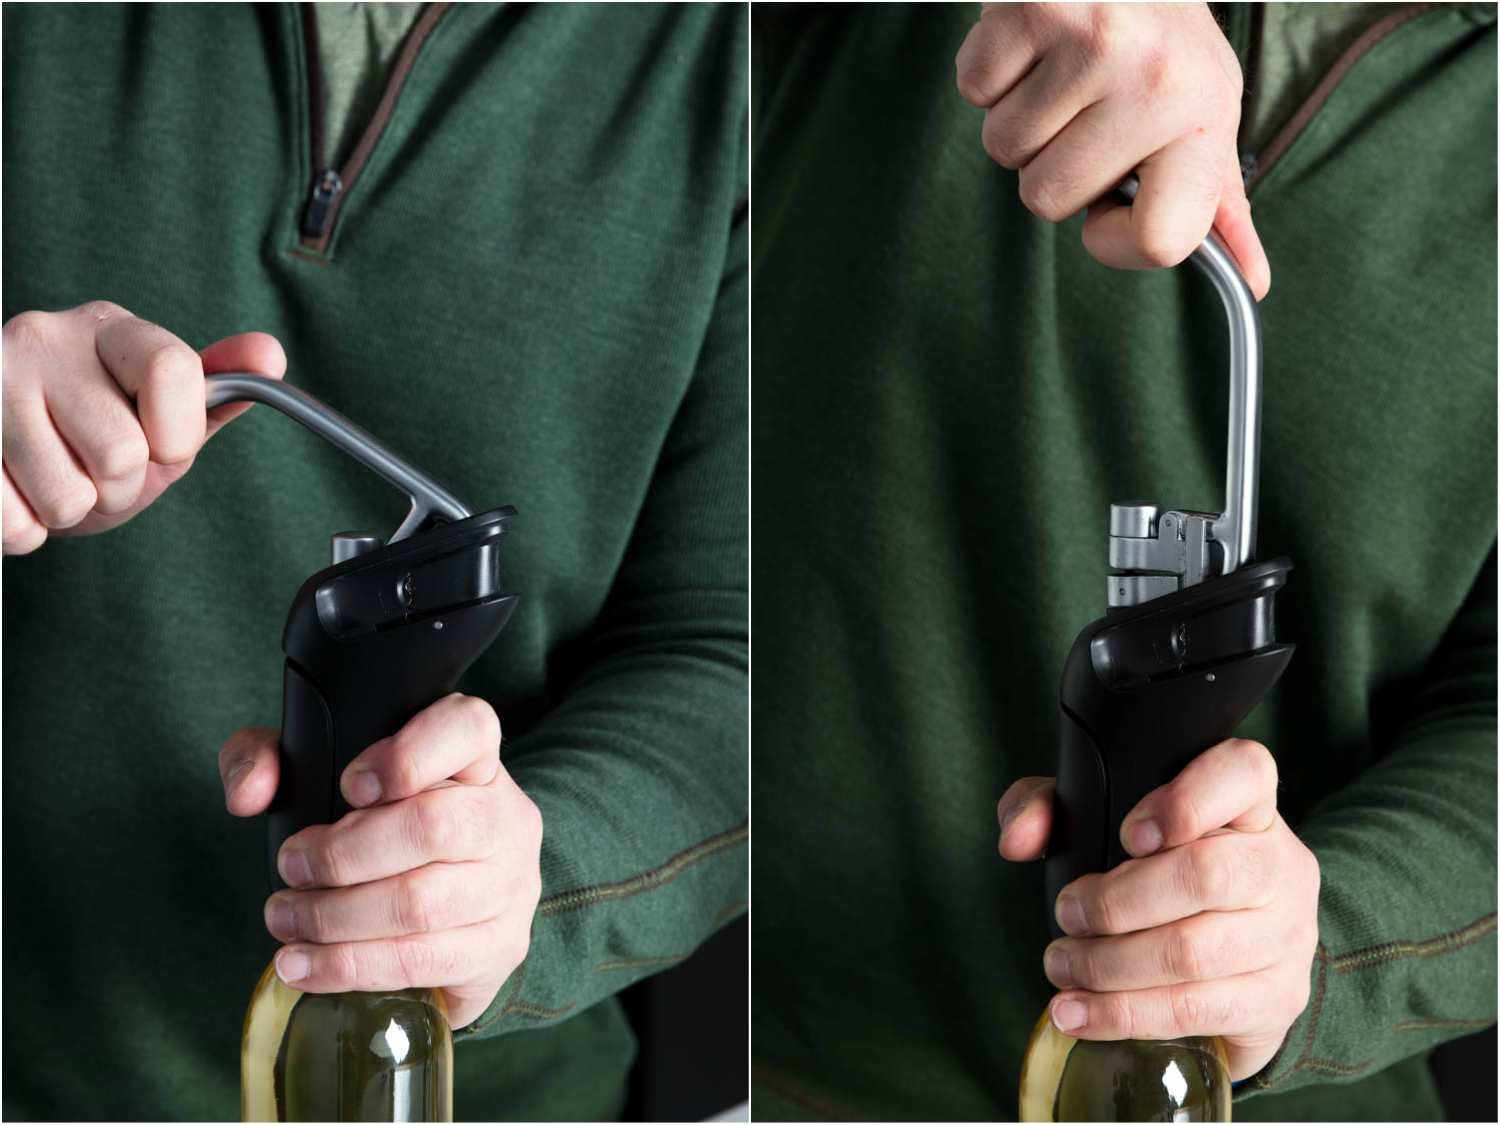 Two stages of using the OXO lever corkscrew to open a bottle of wine: push down, then pull up